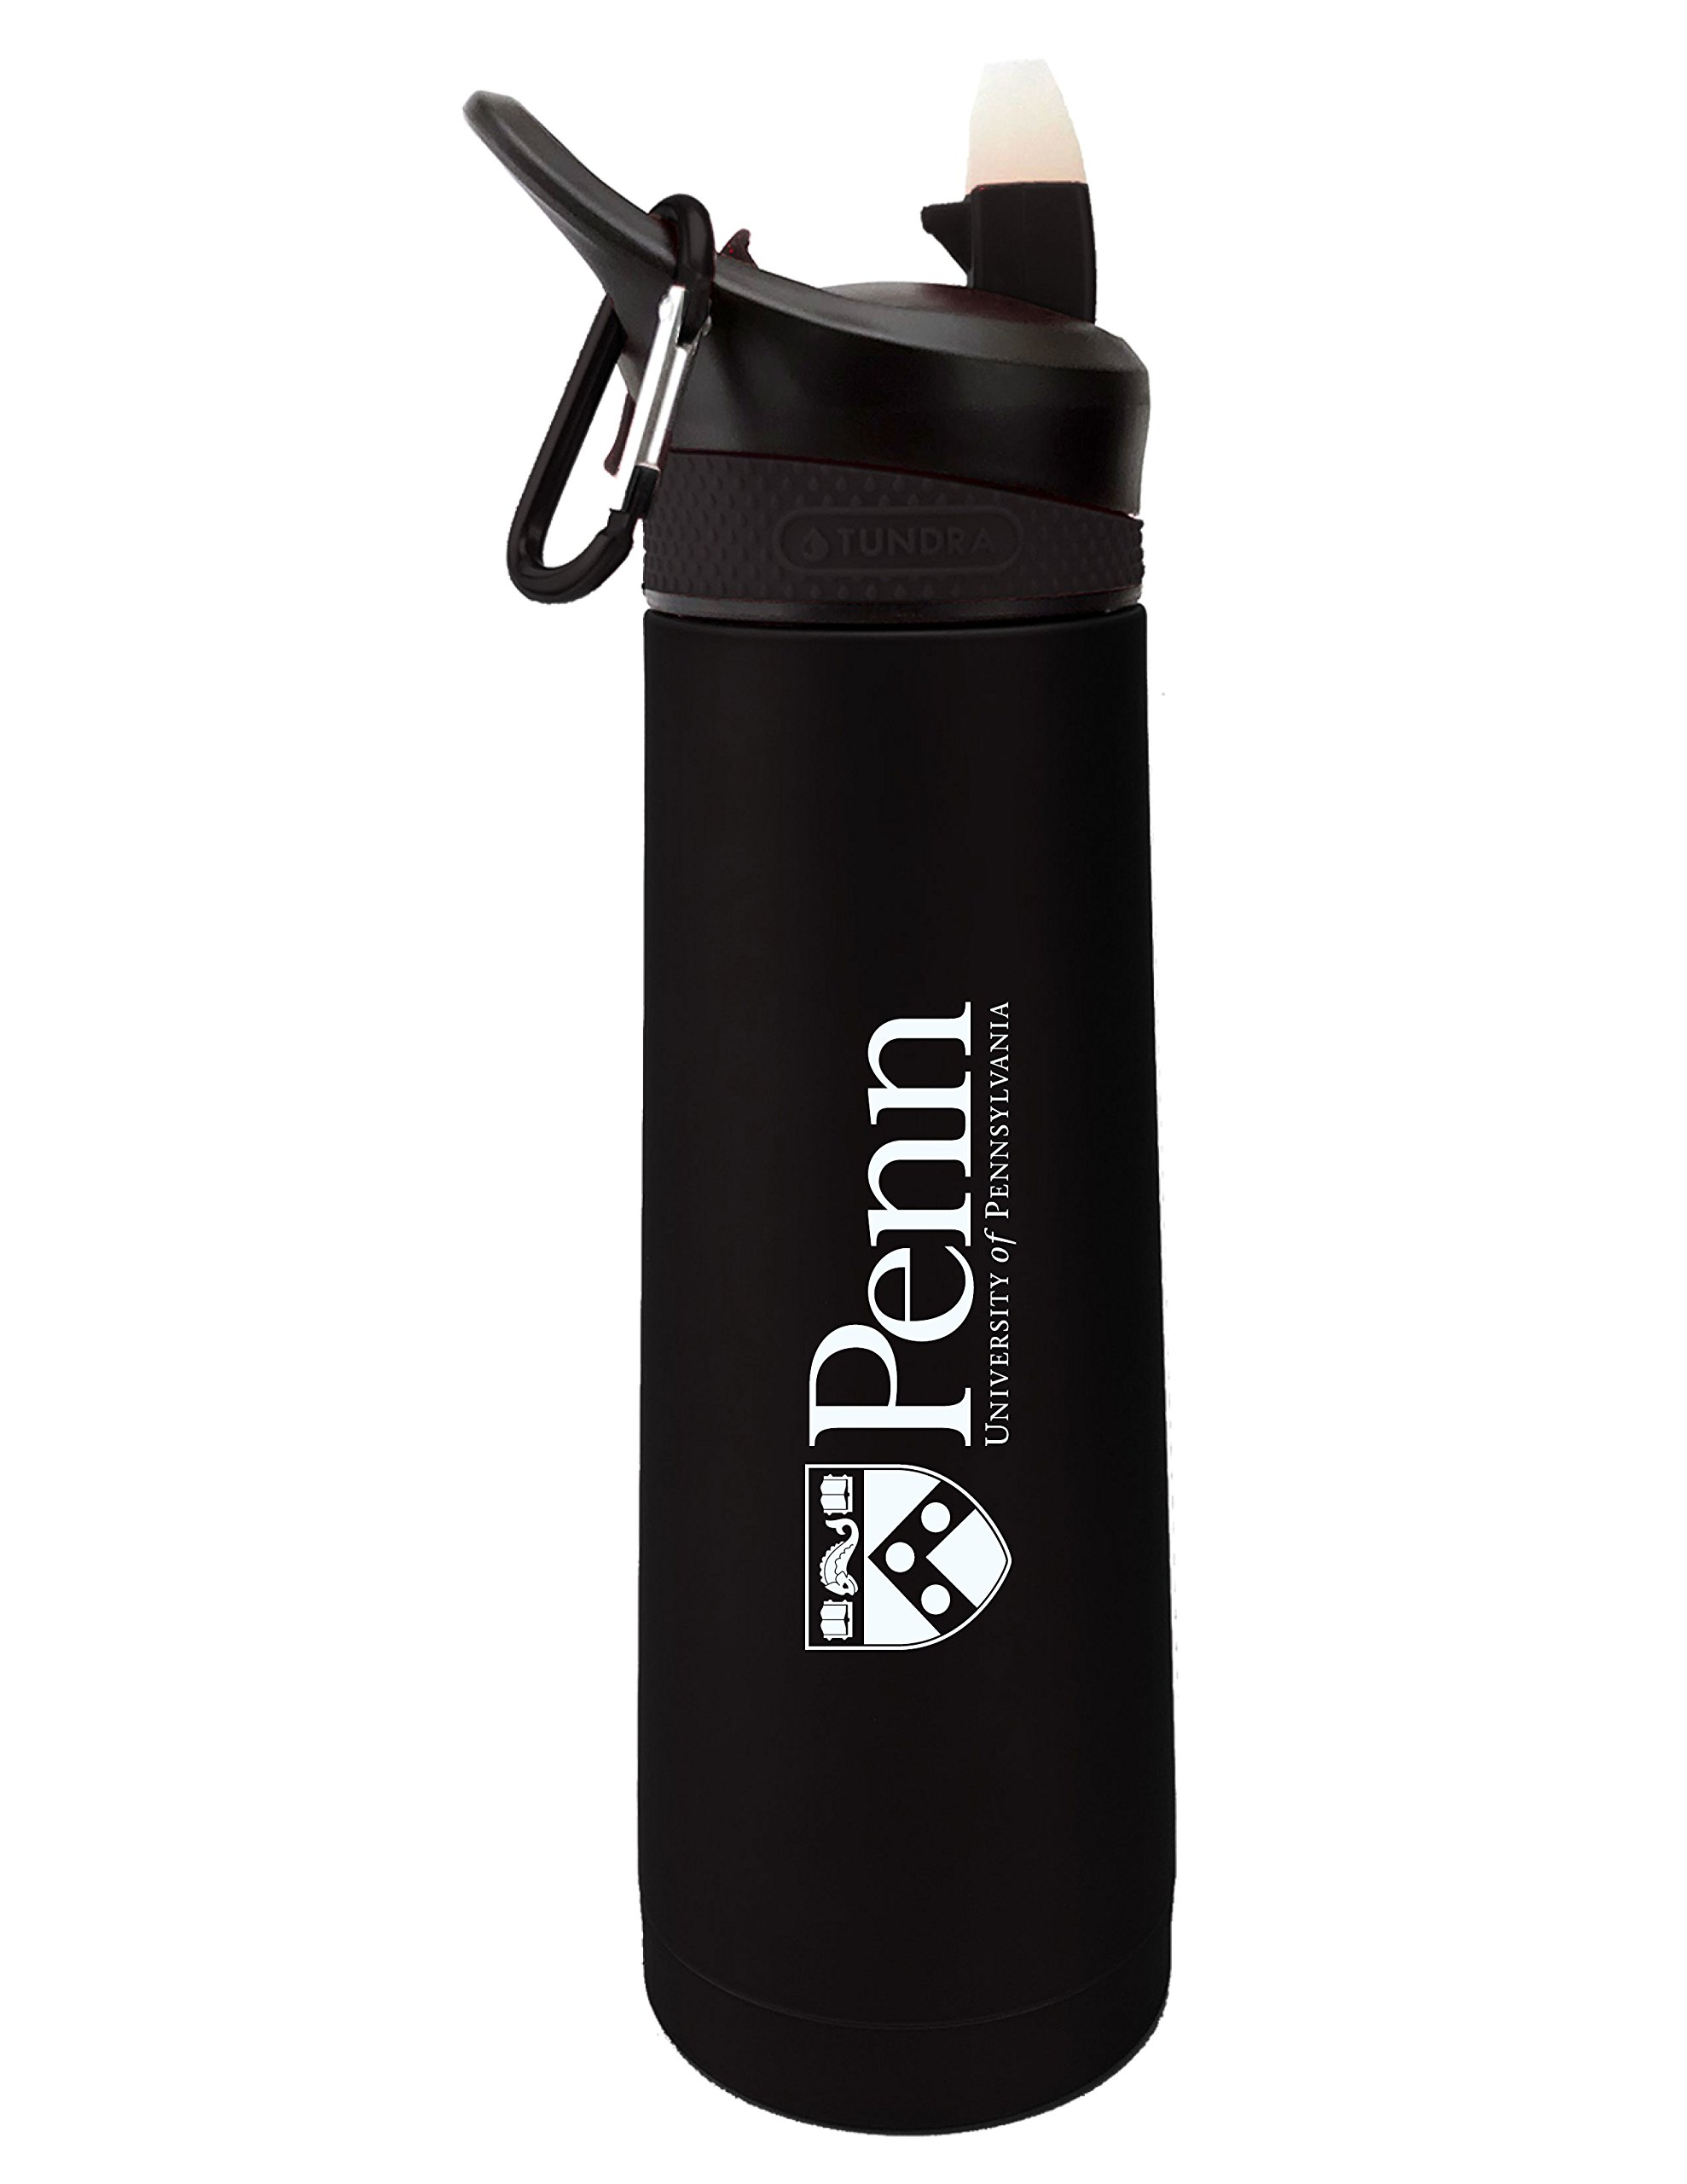 Fanatic Group University of Pennsylvania Dual Walled Stainless Steel Sports Bottle, Design 1 - Black